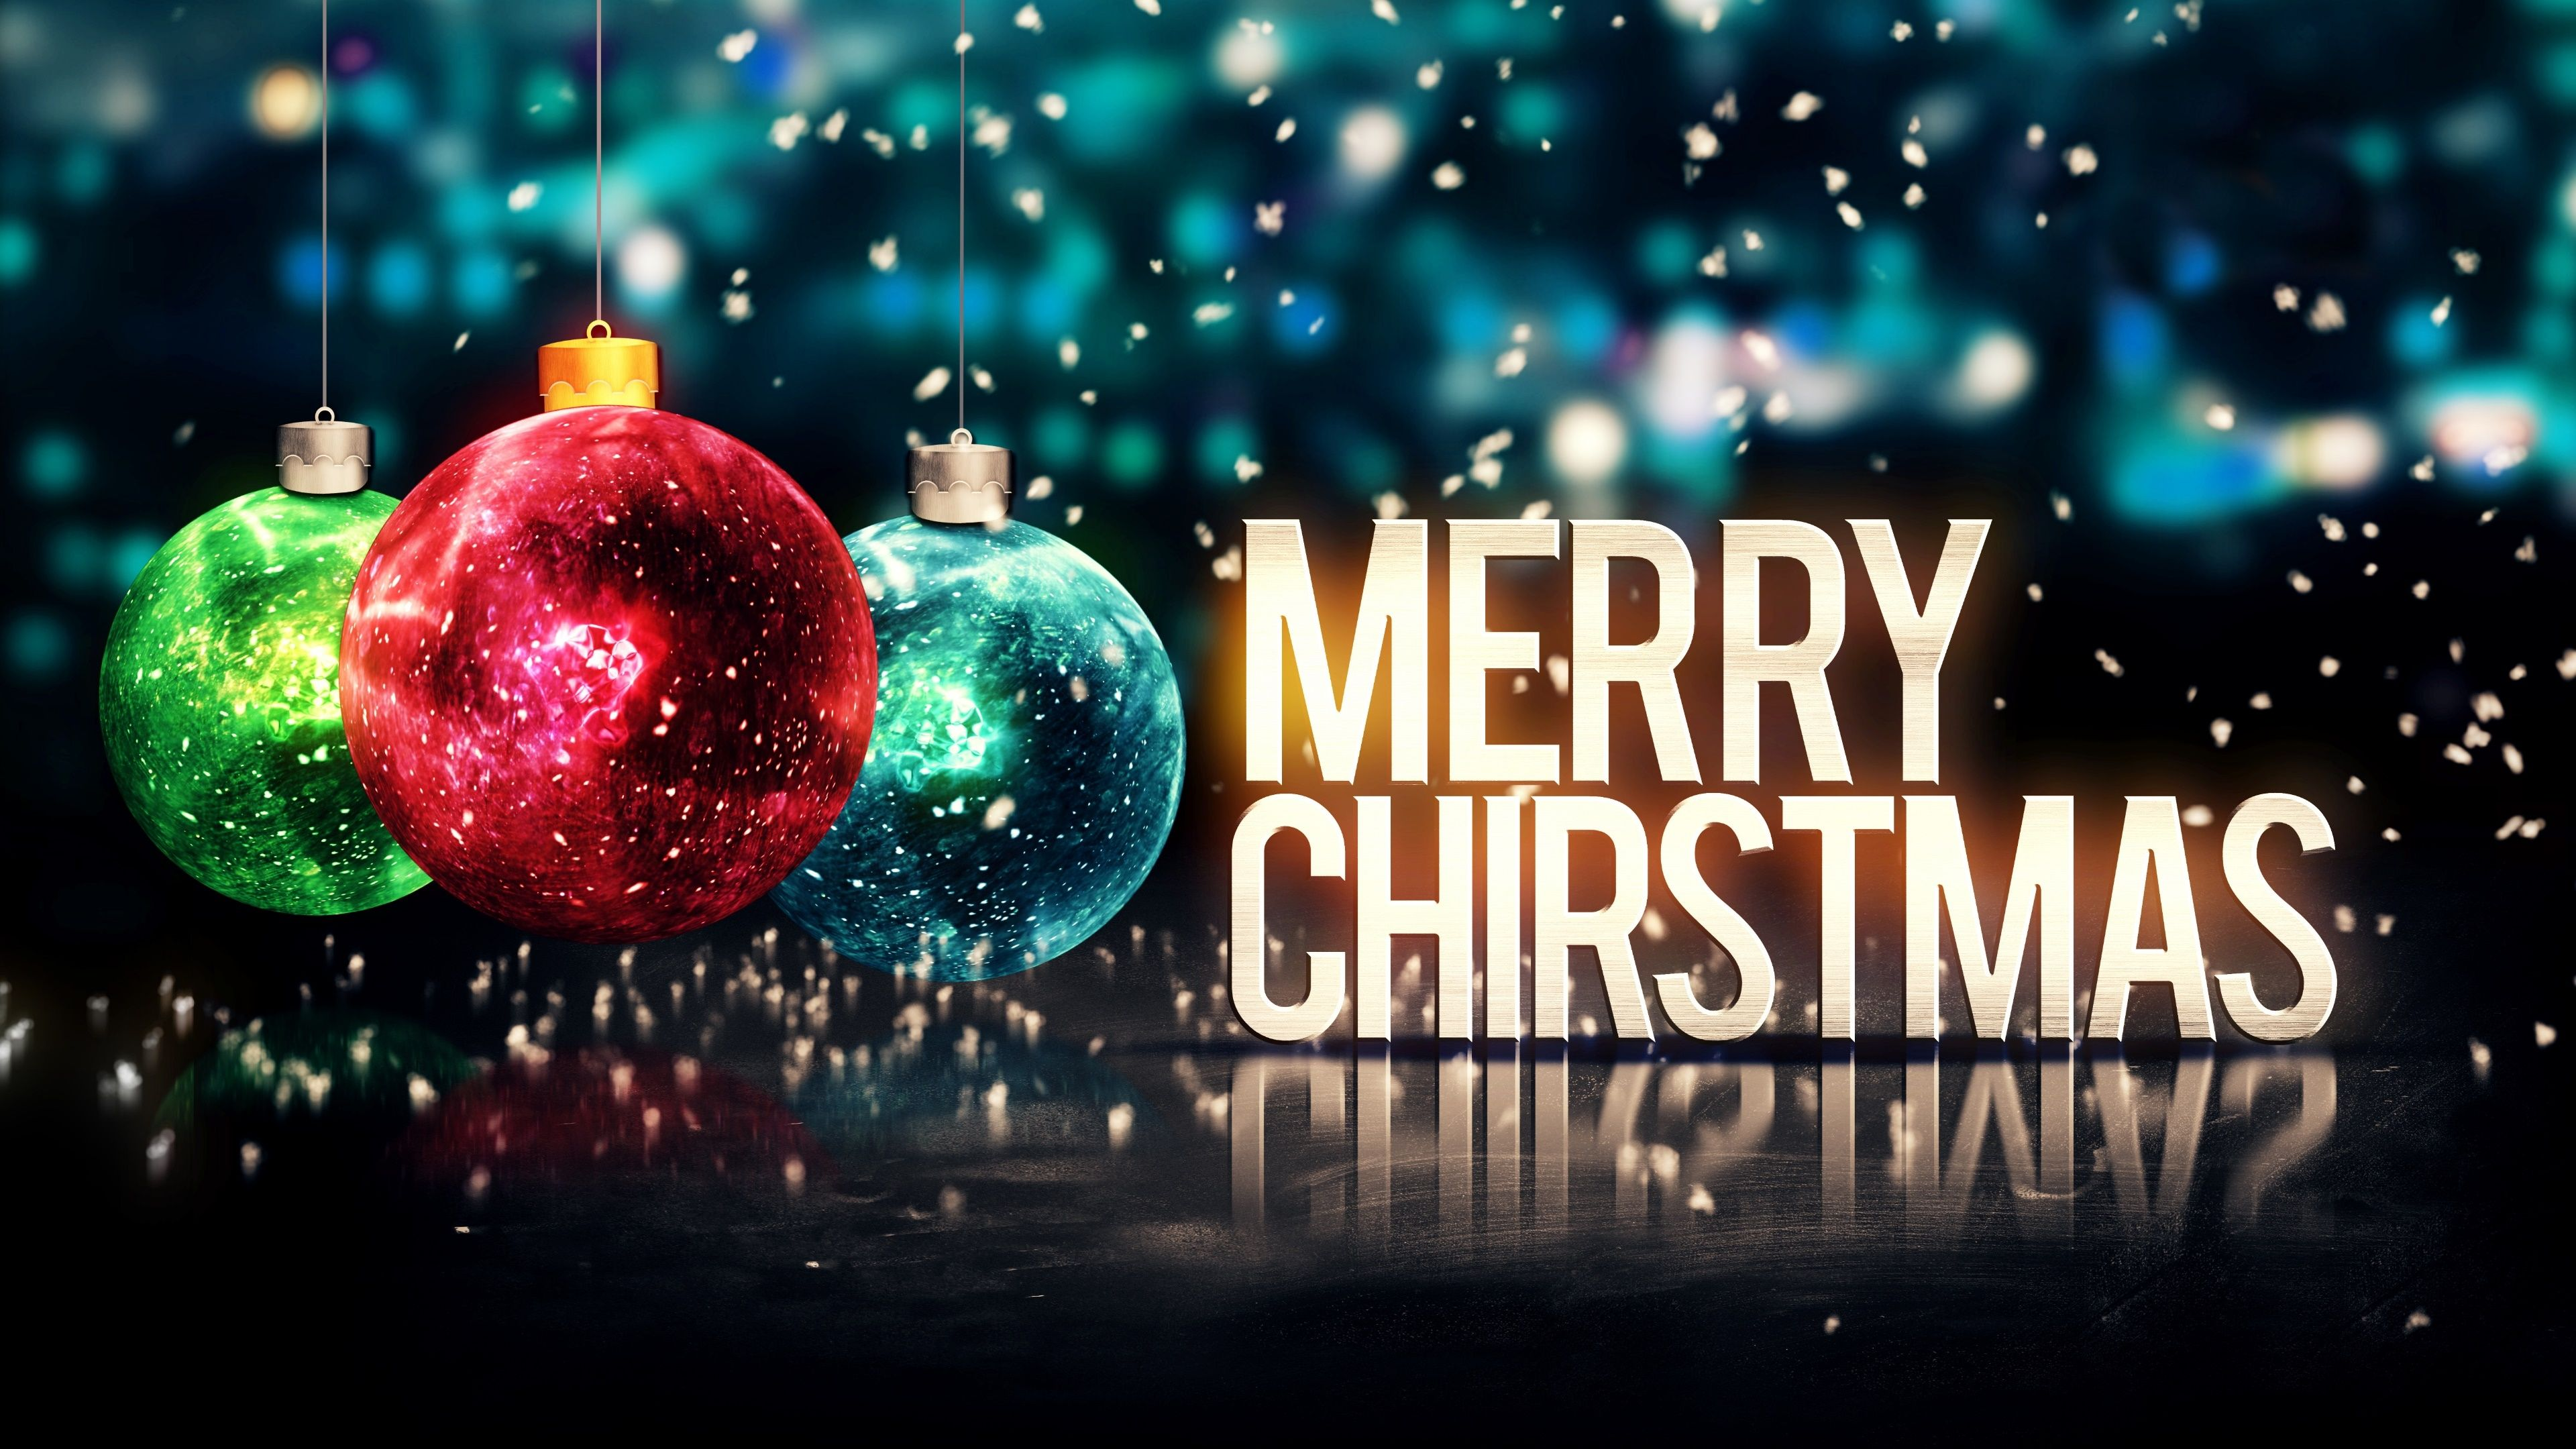 Merry Christmas Wallpaper Photo | Merry christmas wallpaper, Christmas eve  images, Happy merry christmas